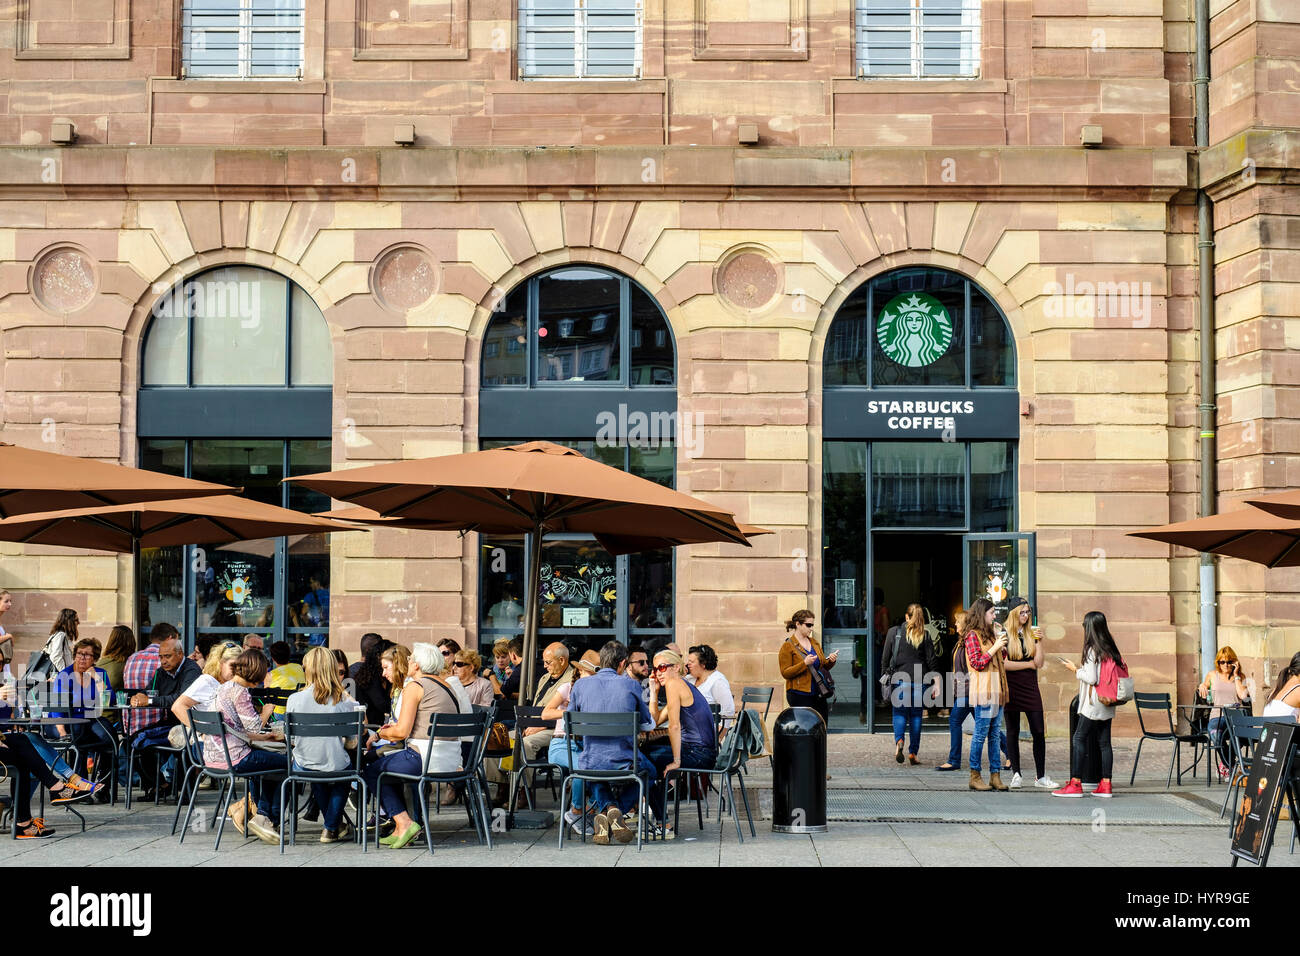 starbucks coffee terrace people aubette building place kl ber stock photo royalty free image. Black Bedroom Furniture Sets. Home Design Ideas